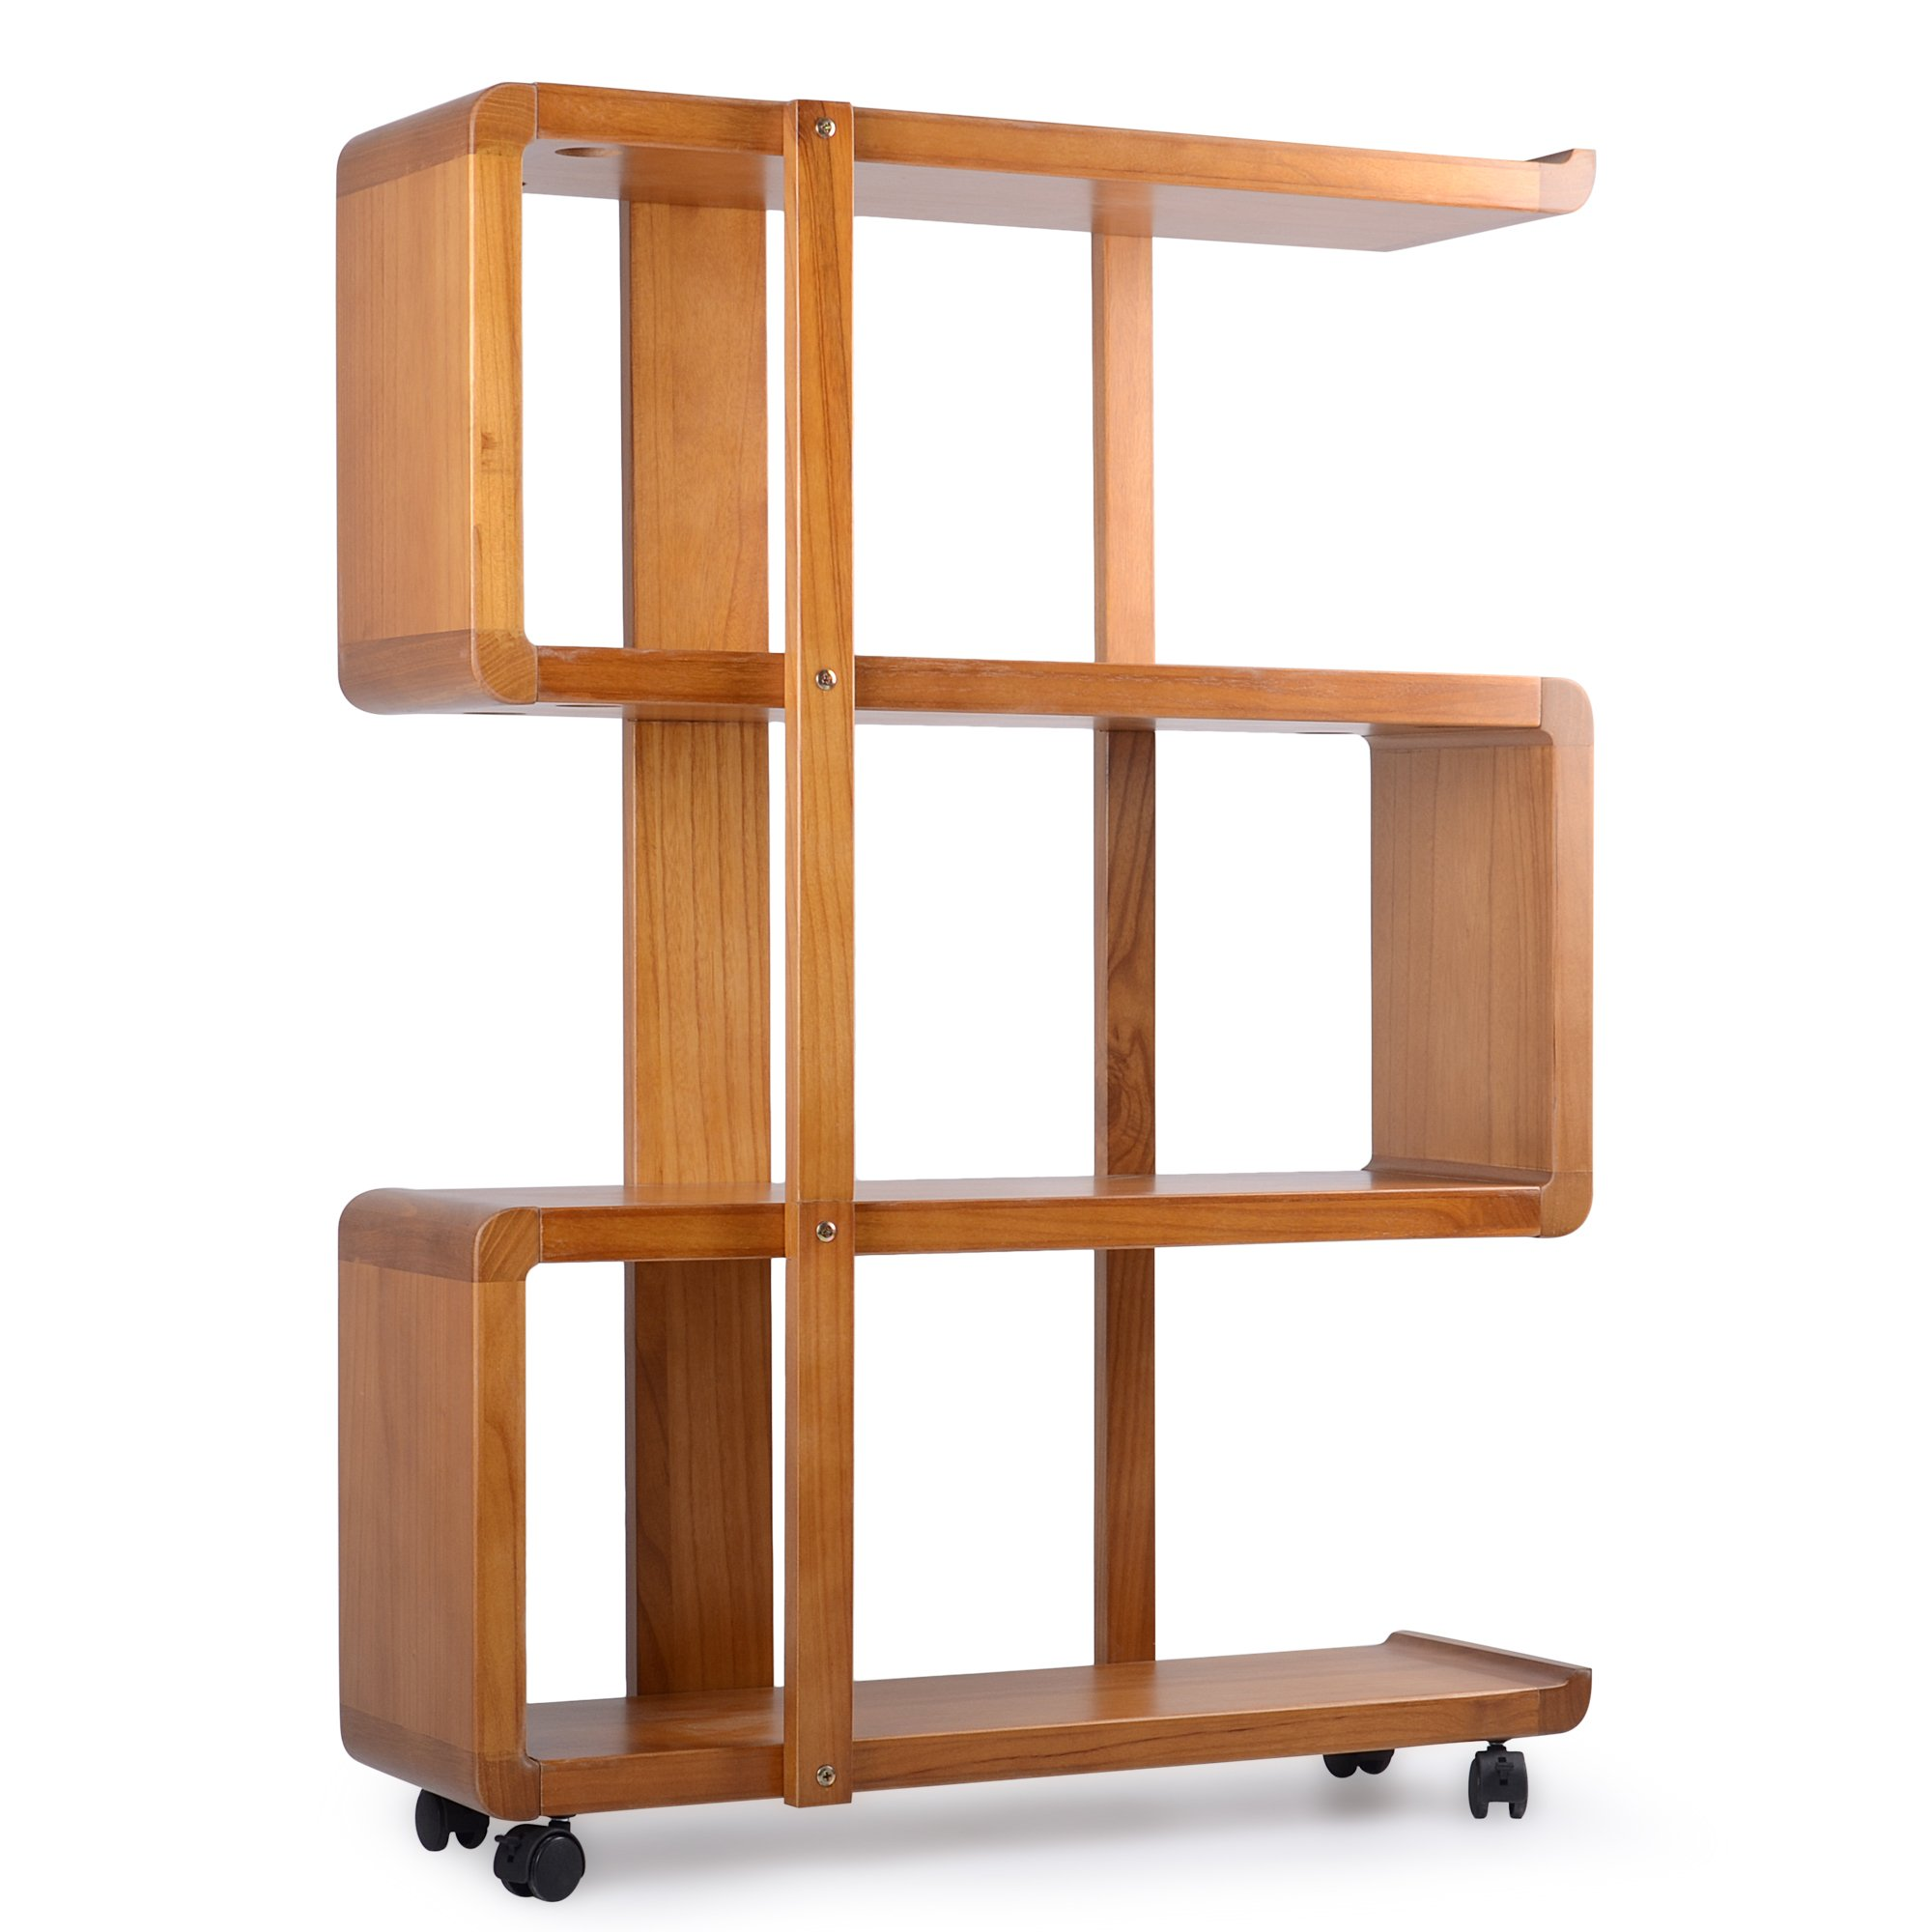 Kendal 4 Tiers Dismountable Wood Bookshelf Rack Organizer with Lockable Casters WBS01AK